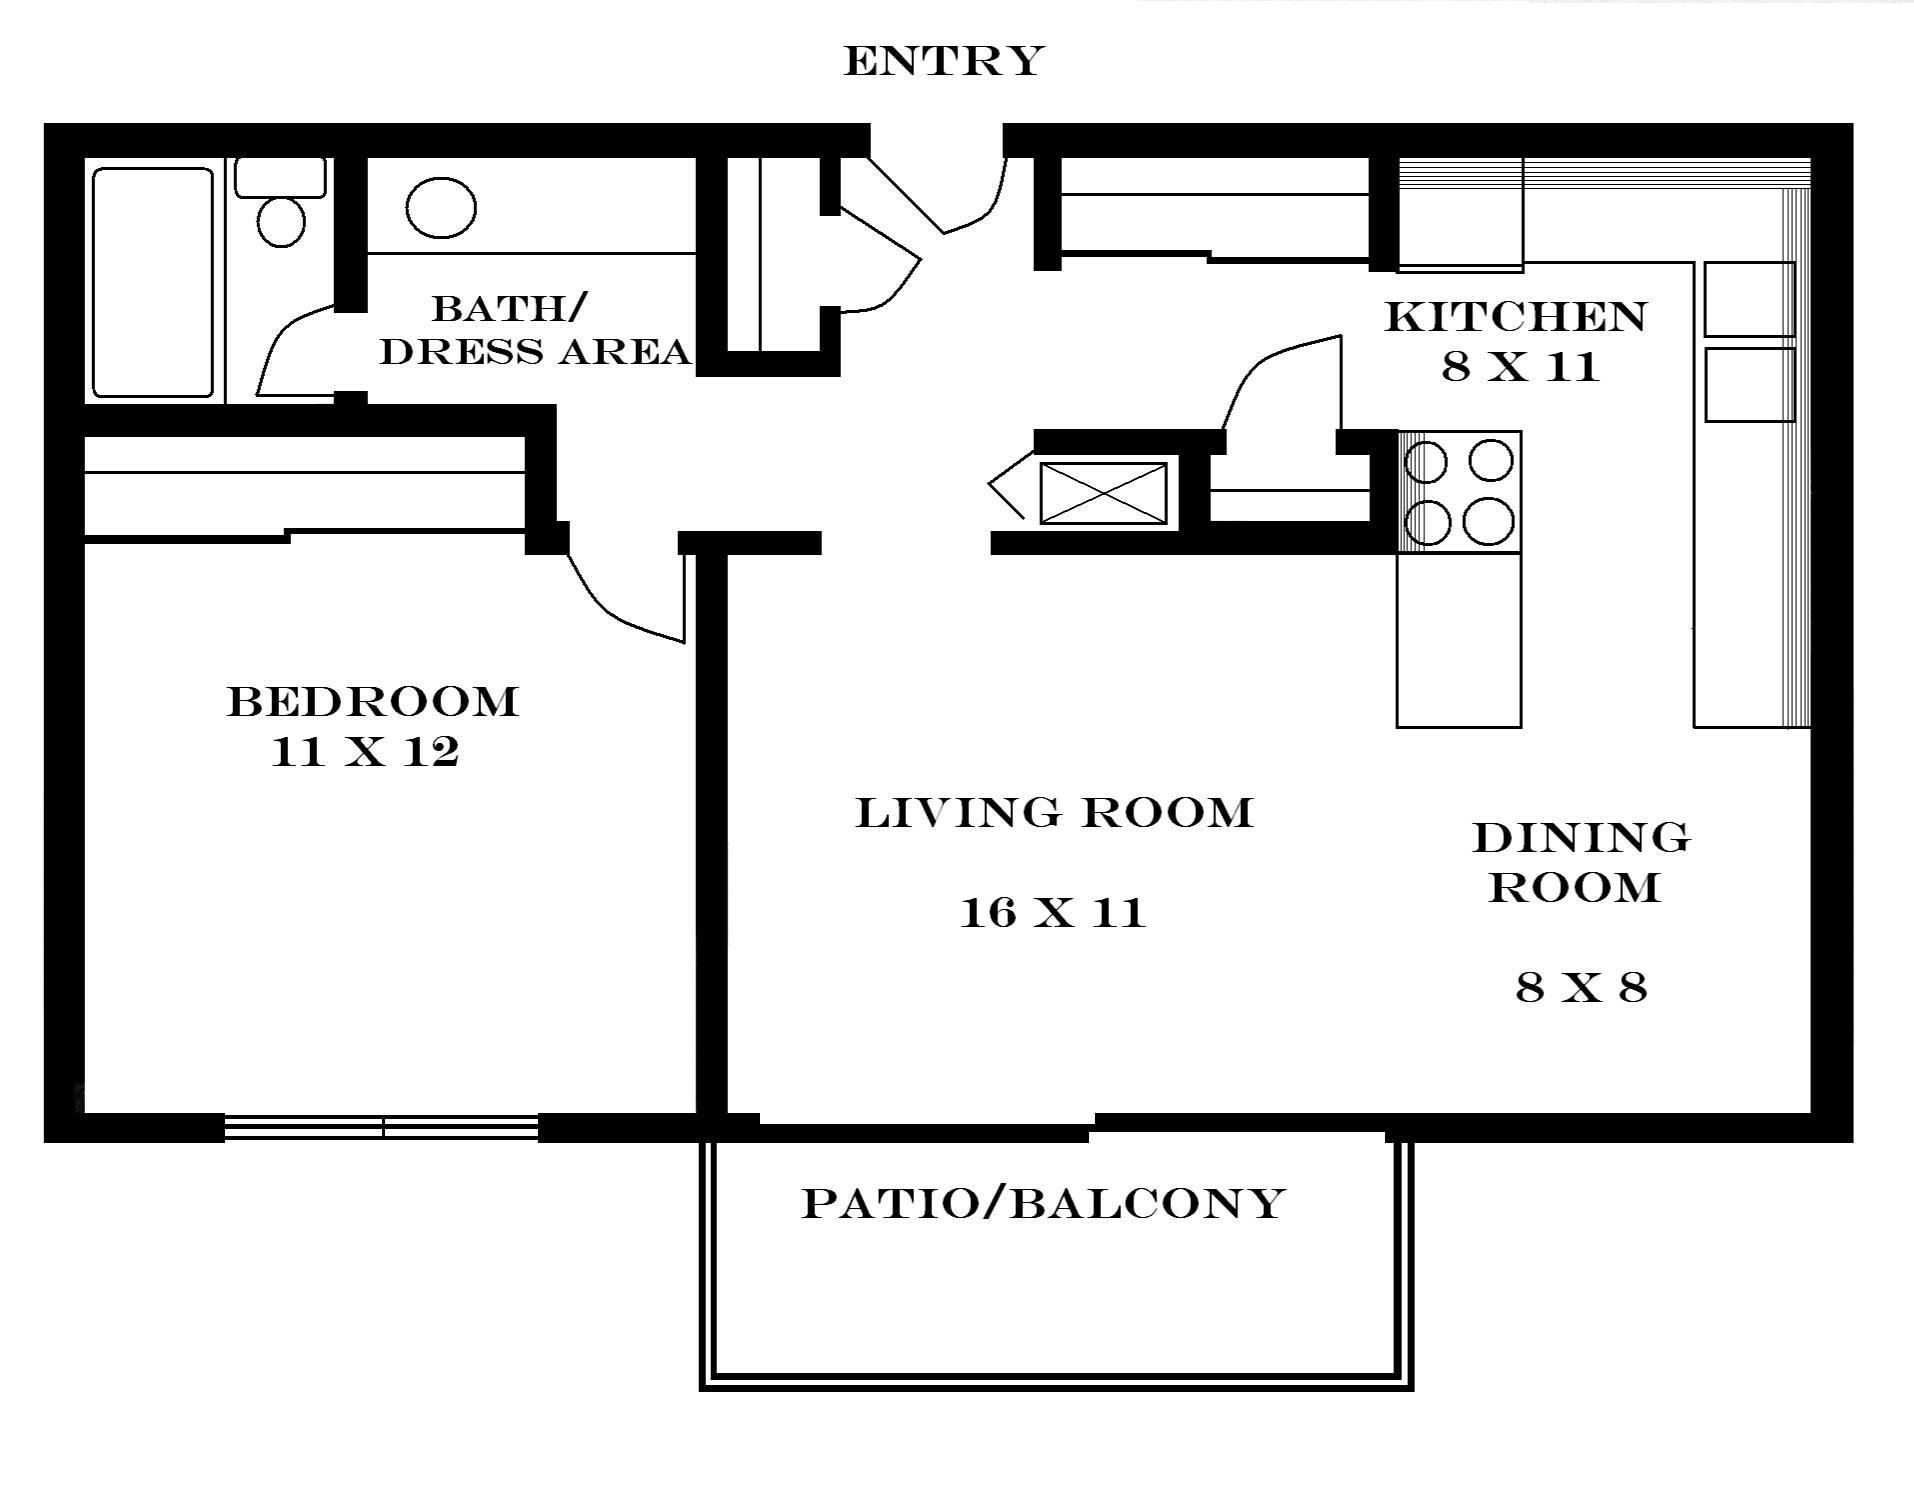 Lawrence apartments meadowbrook 2601 dover square for Small 1 bedroom apartment floor plans